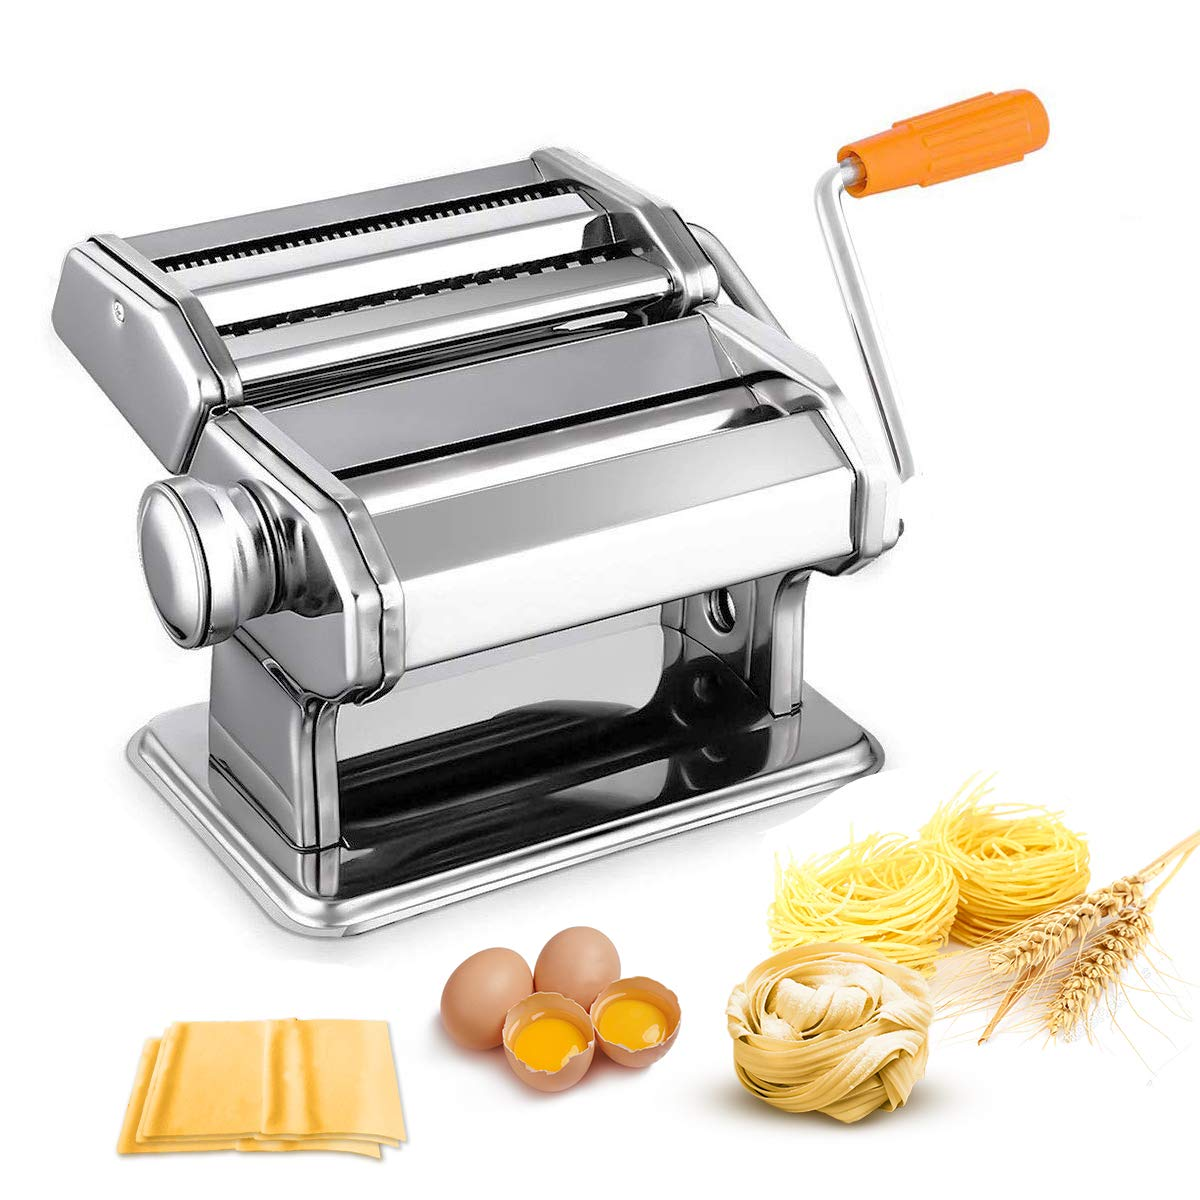 Pasta Maker Machine, Noeler Pasta Crank Stainless Steel Pasta Roller Machine,Manual Noodle Maker Pasta Cutters with 2 Blades,Make Fresh Spaghetti or Fettuccini by Noeler